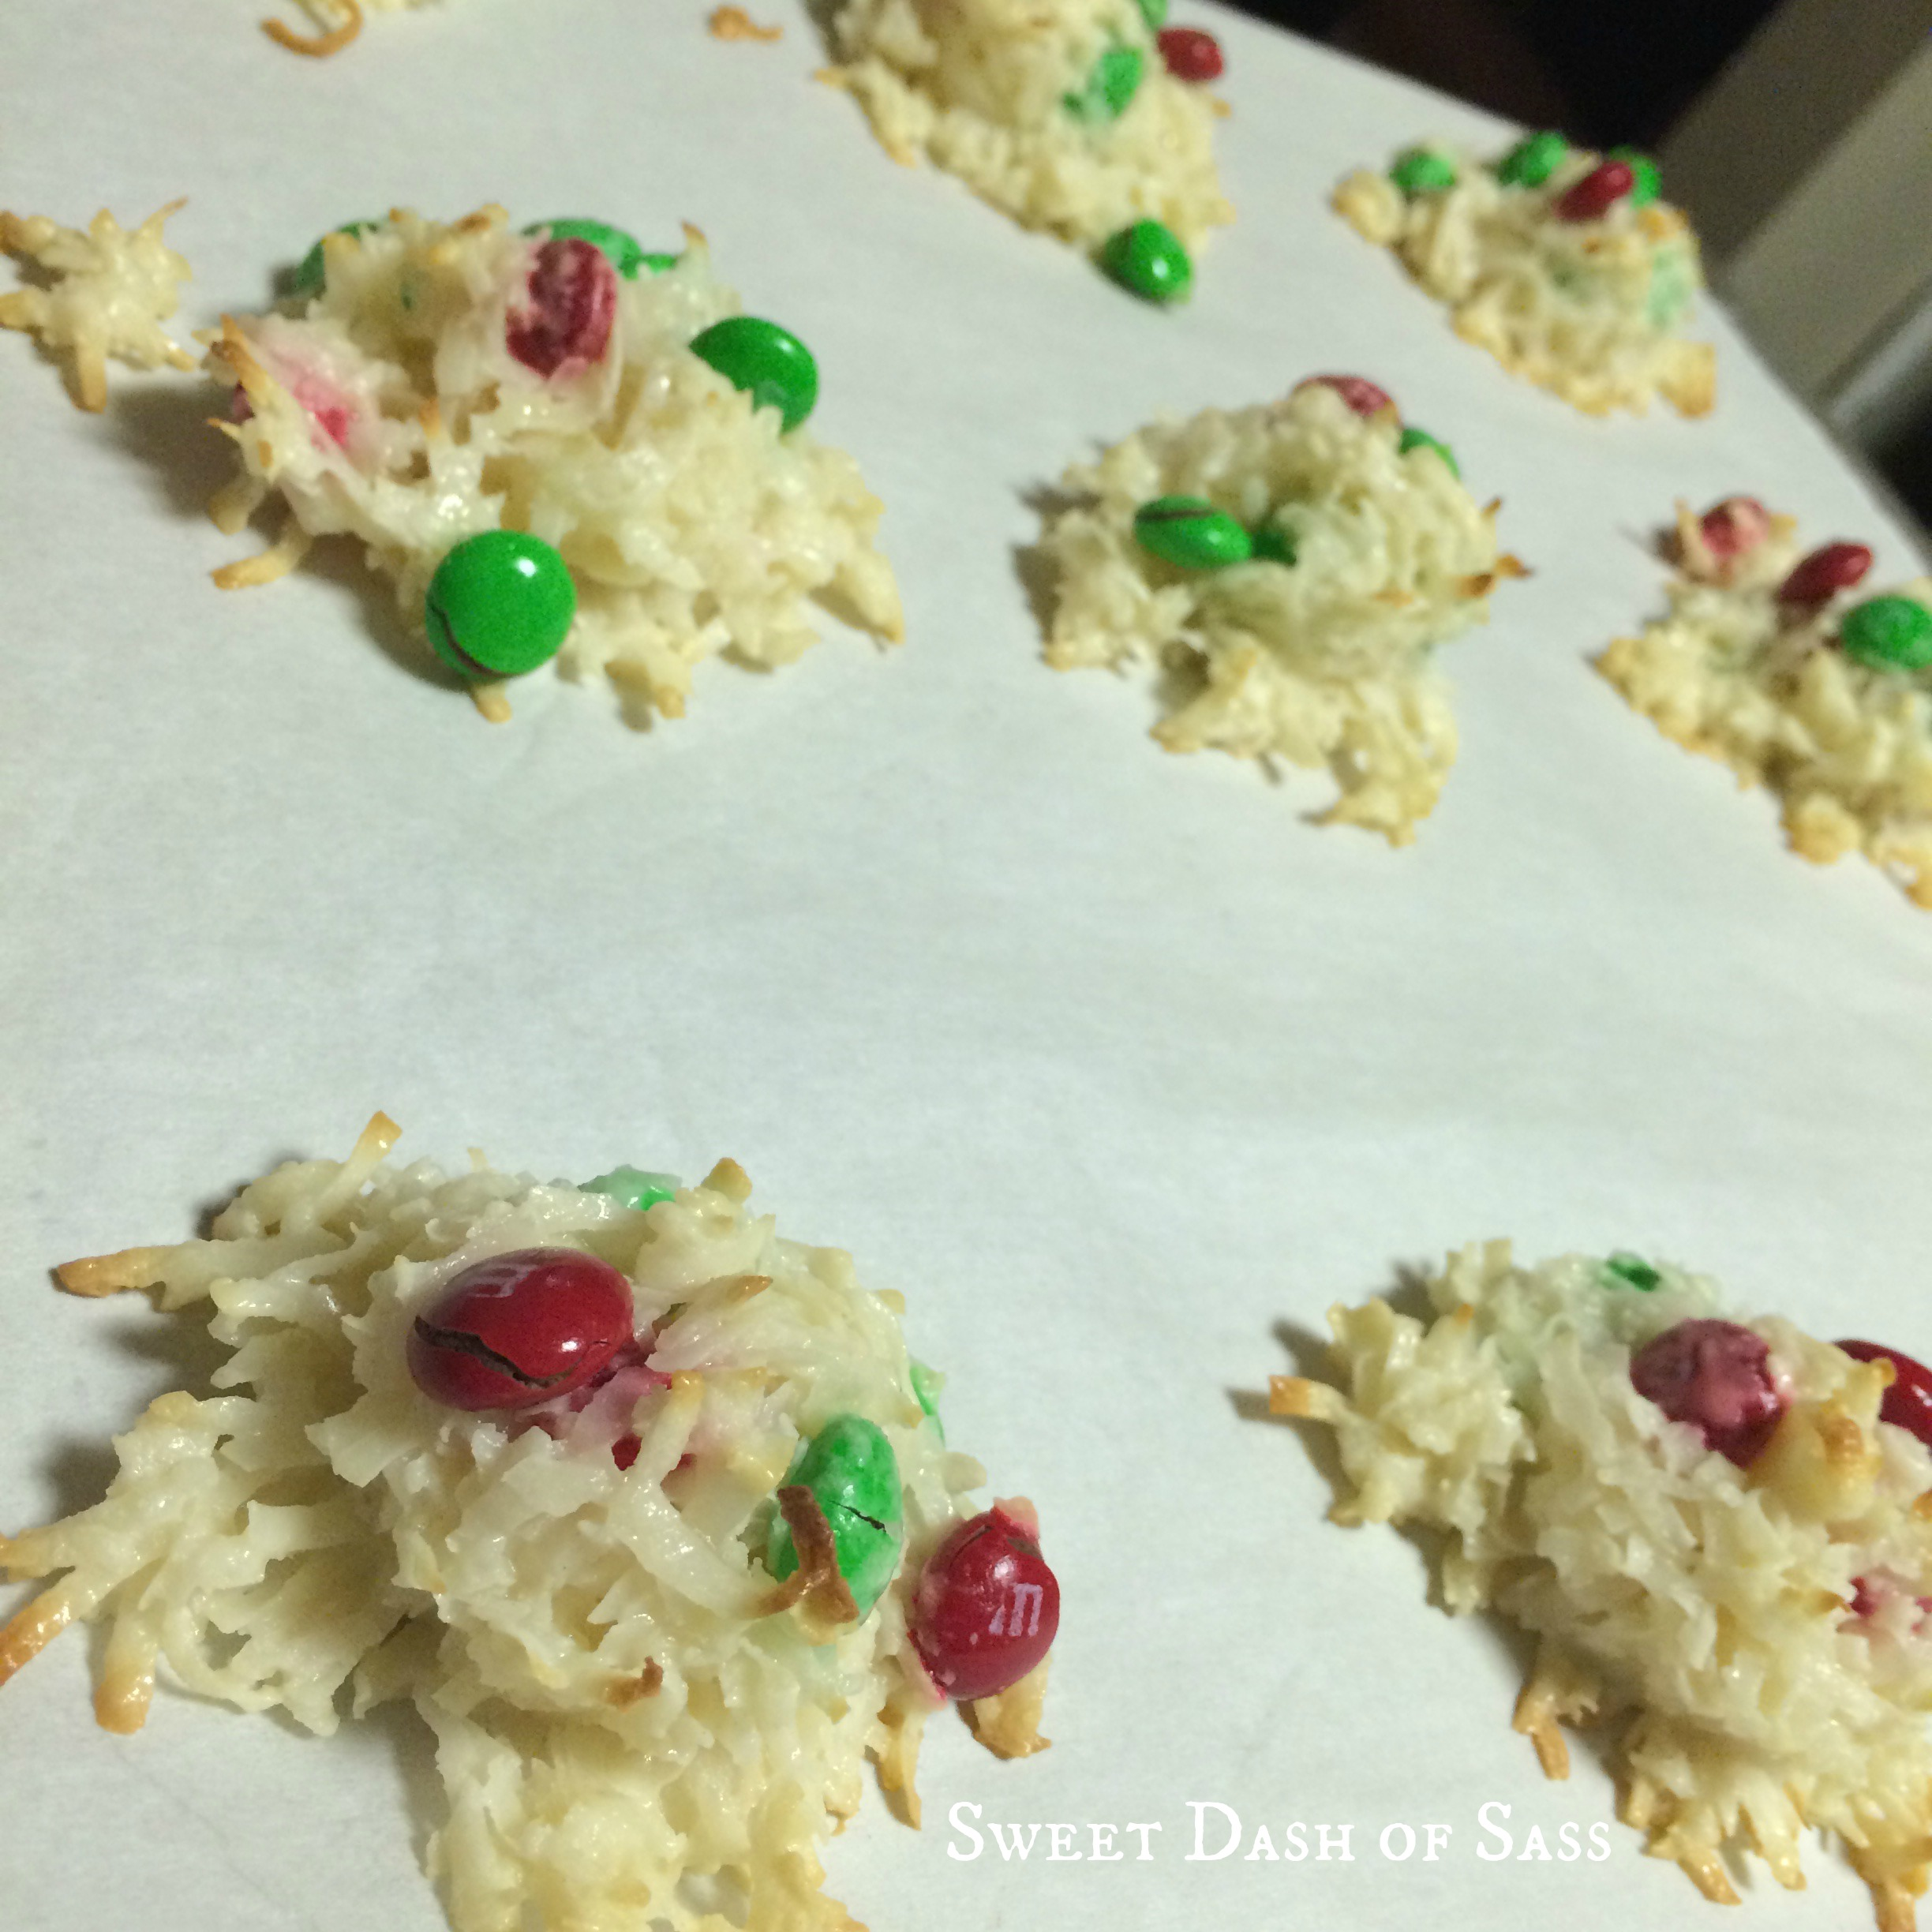 Coconut Macaroons with M&M's - #25DaysCookieStyle www.SweetDashofSass.com  --- ONLY 4 INGREDIENTS!!